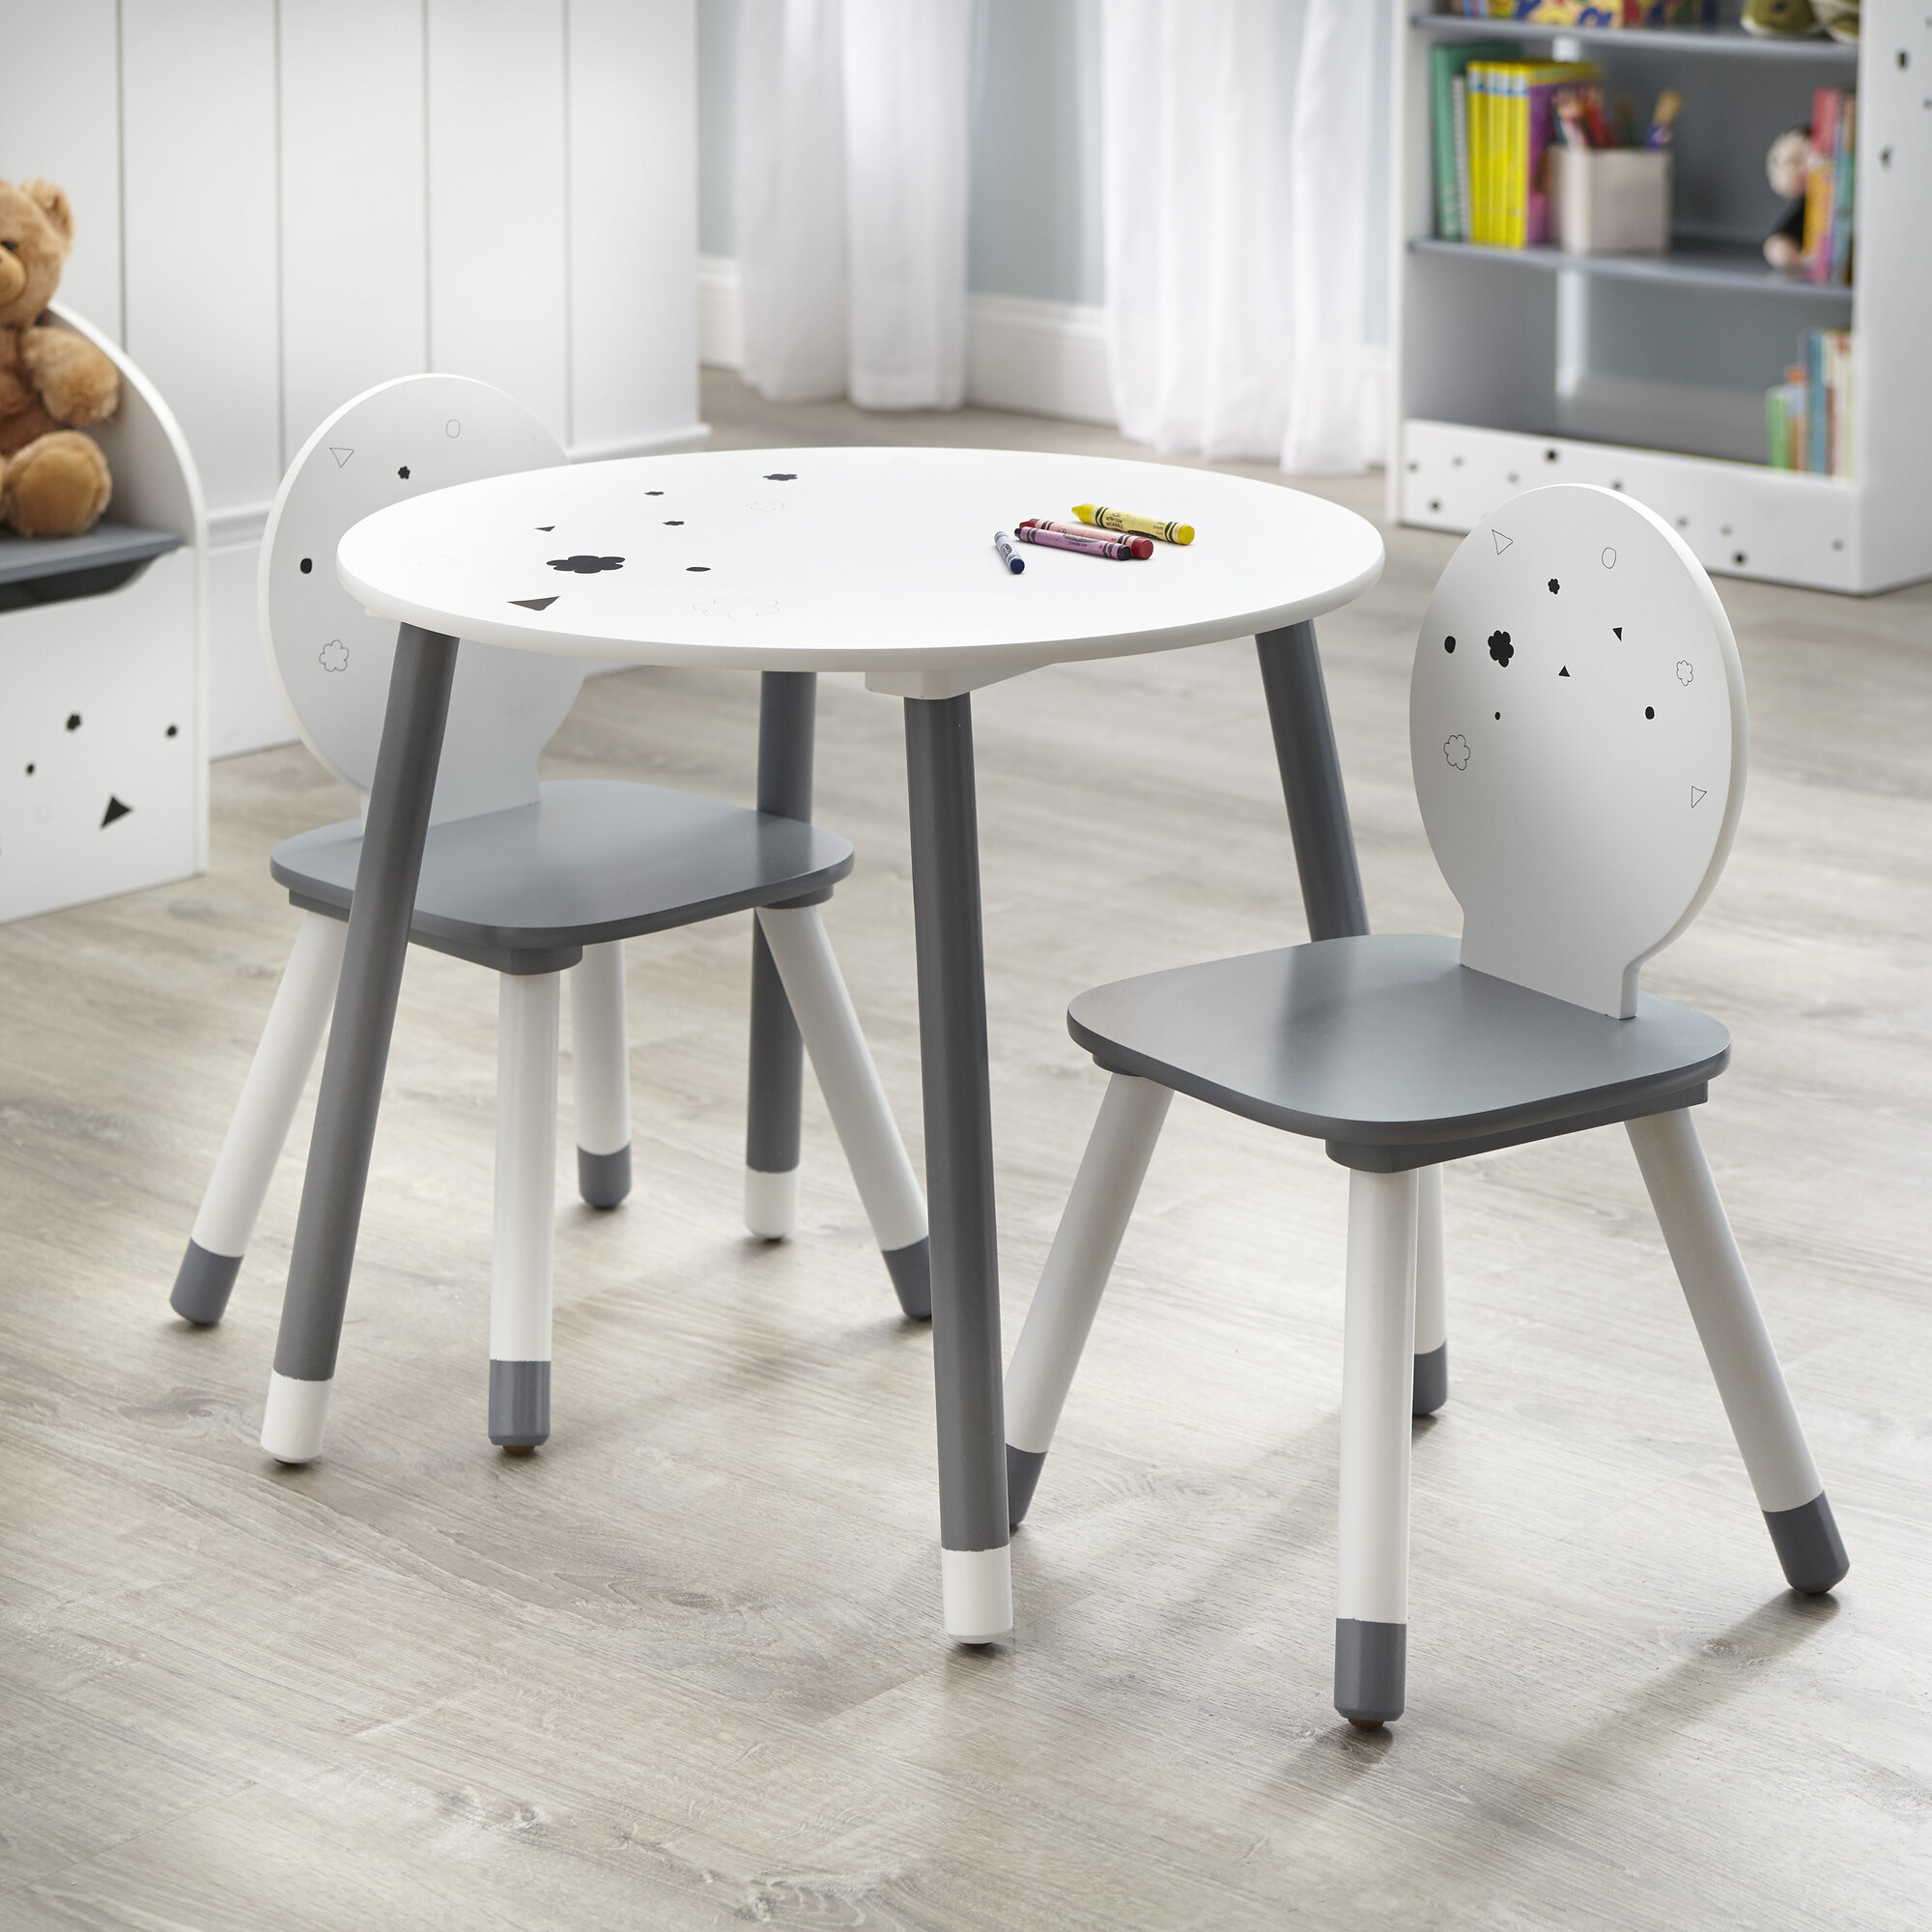 Super Details About Harriet Bee Camborne Kids 3 Piece Writing Table And Chair Set Pdpeps Interior Chair Design Pdpepsorg